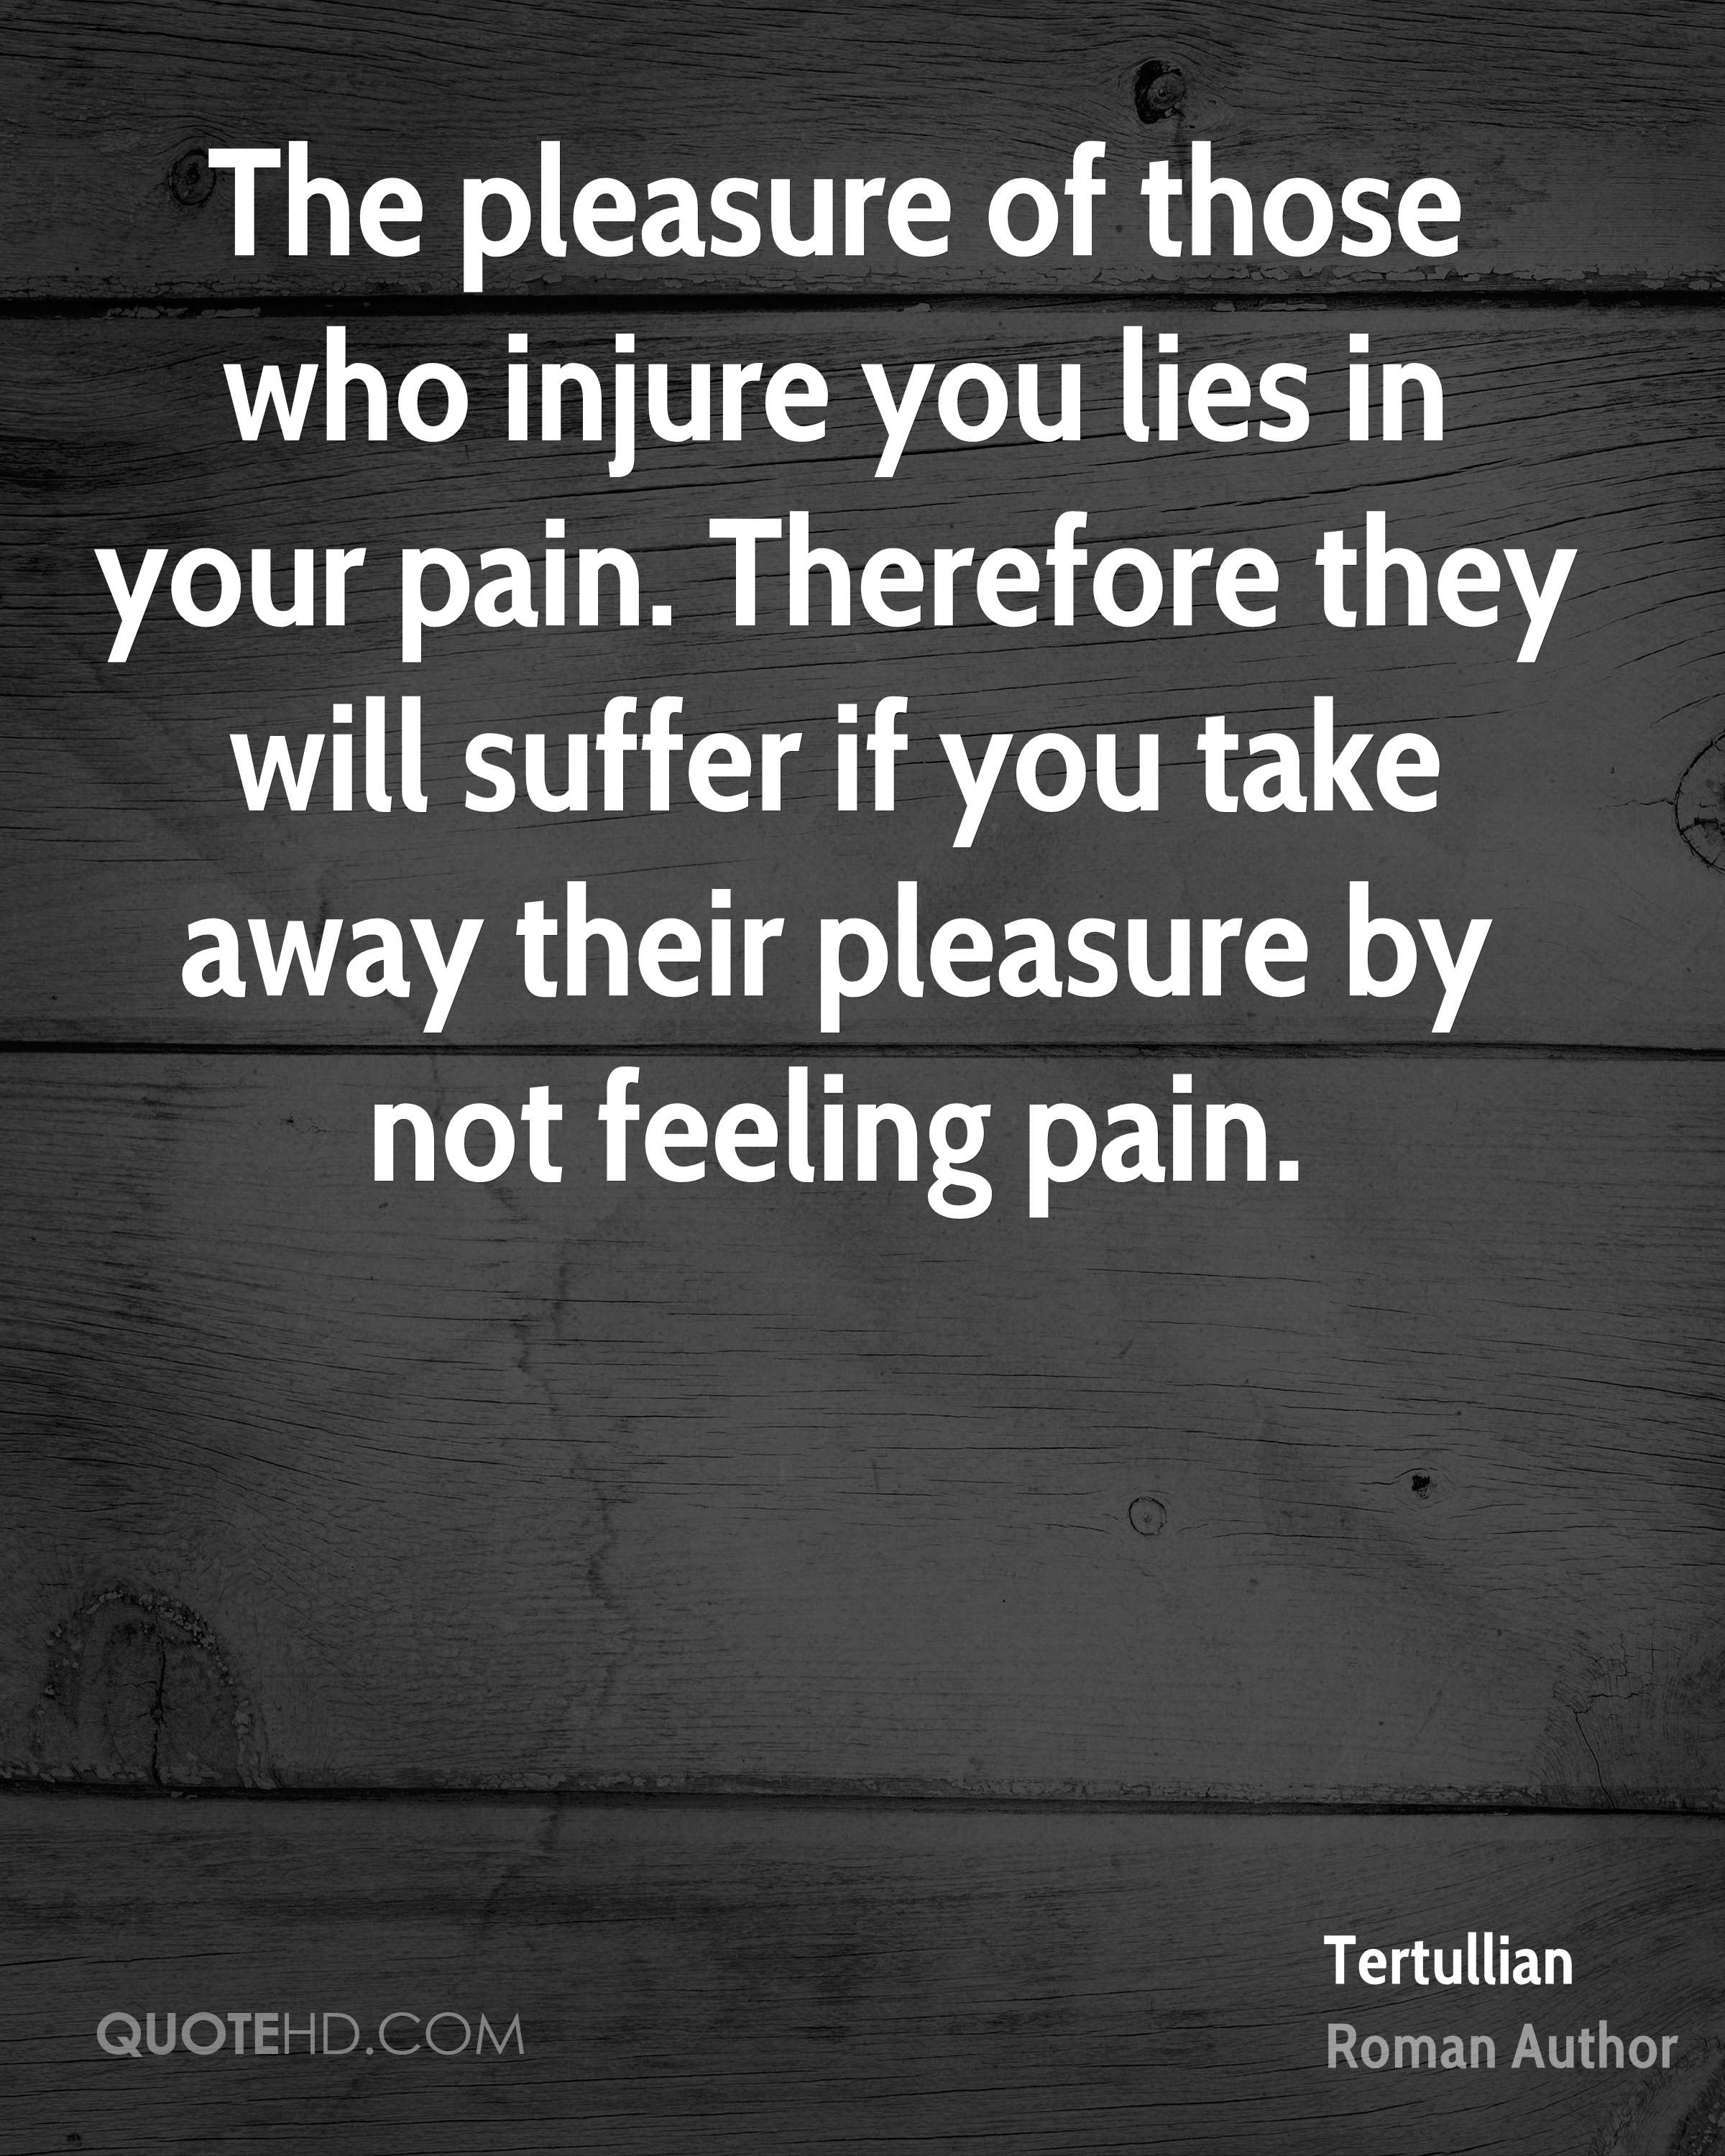 The pleasure of those who injure you lies in your pain. Therefore they will suffer if you take away their pleasure by not feeling pain.